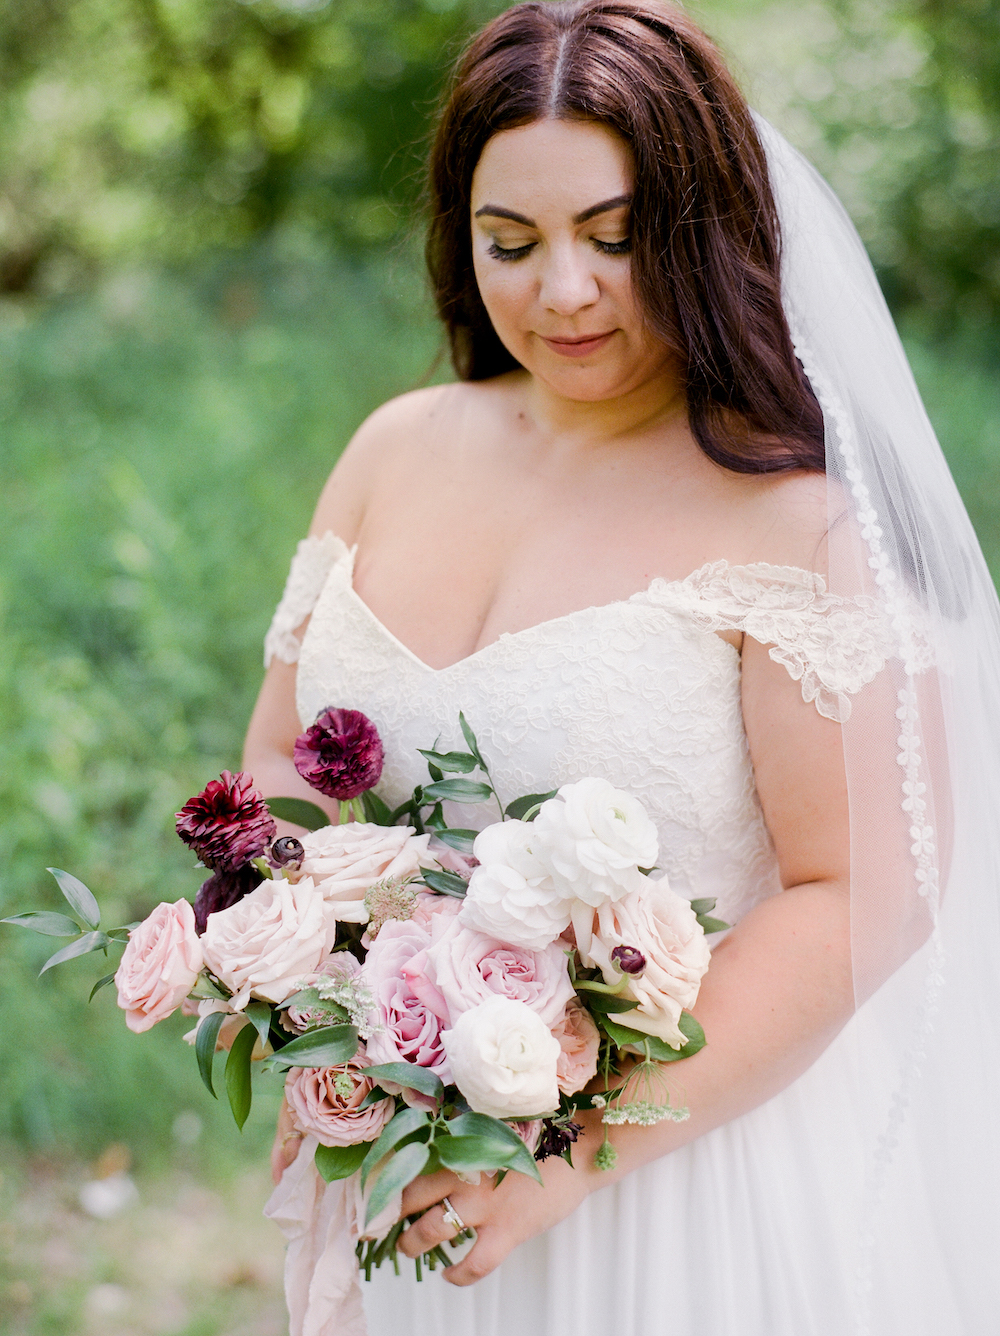 Blush and Plum Wedding flowers - Winnipeg Wedding Florists